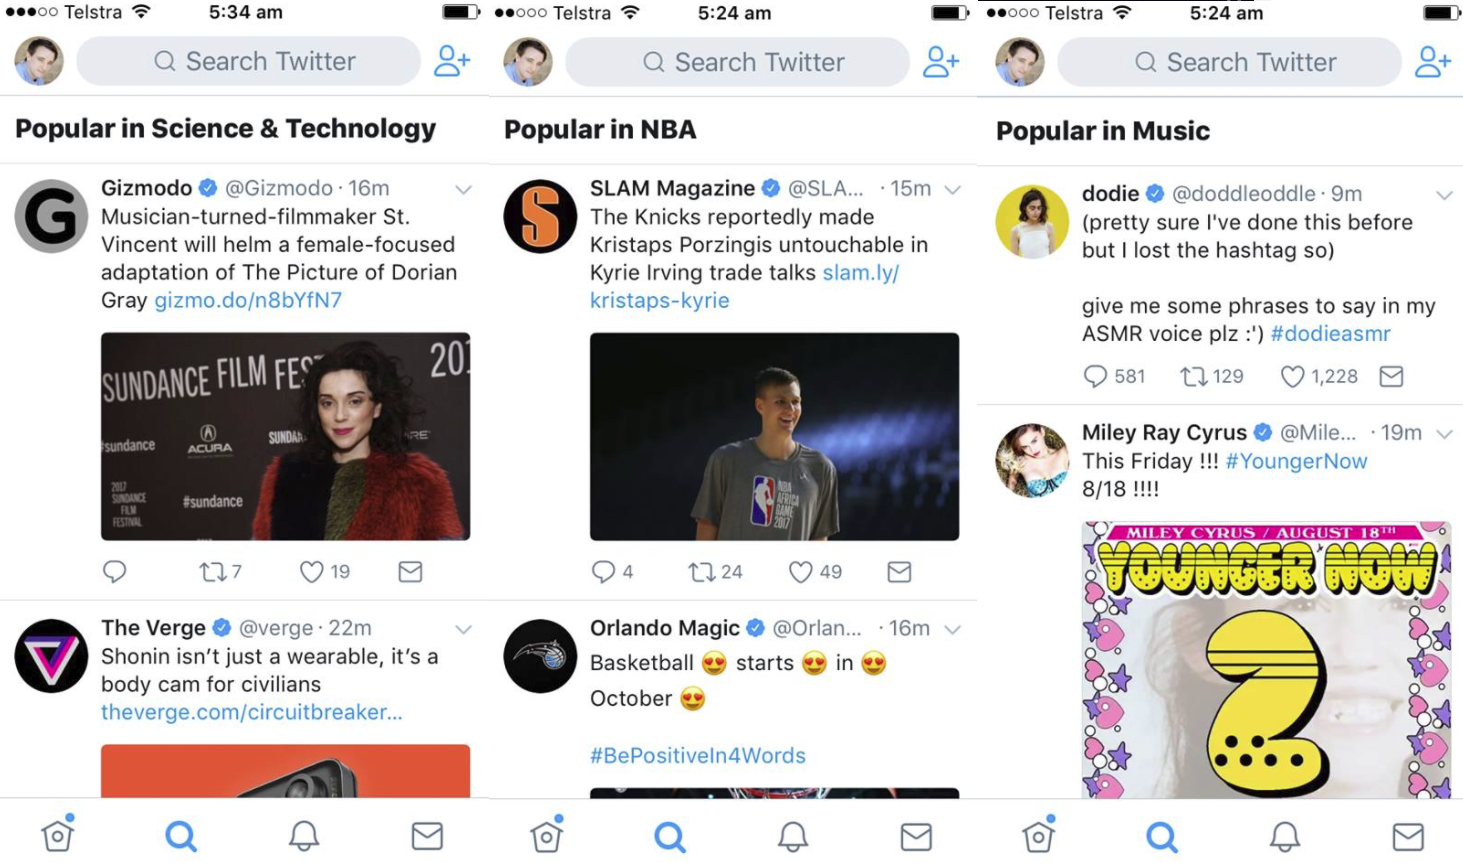 Twitter's Adding More Notification Types to Boost Awareness and Engagement | Social Media Today